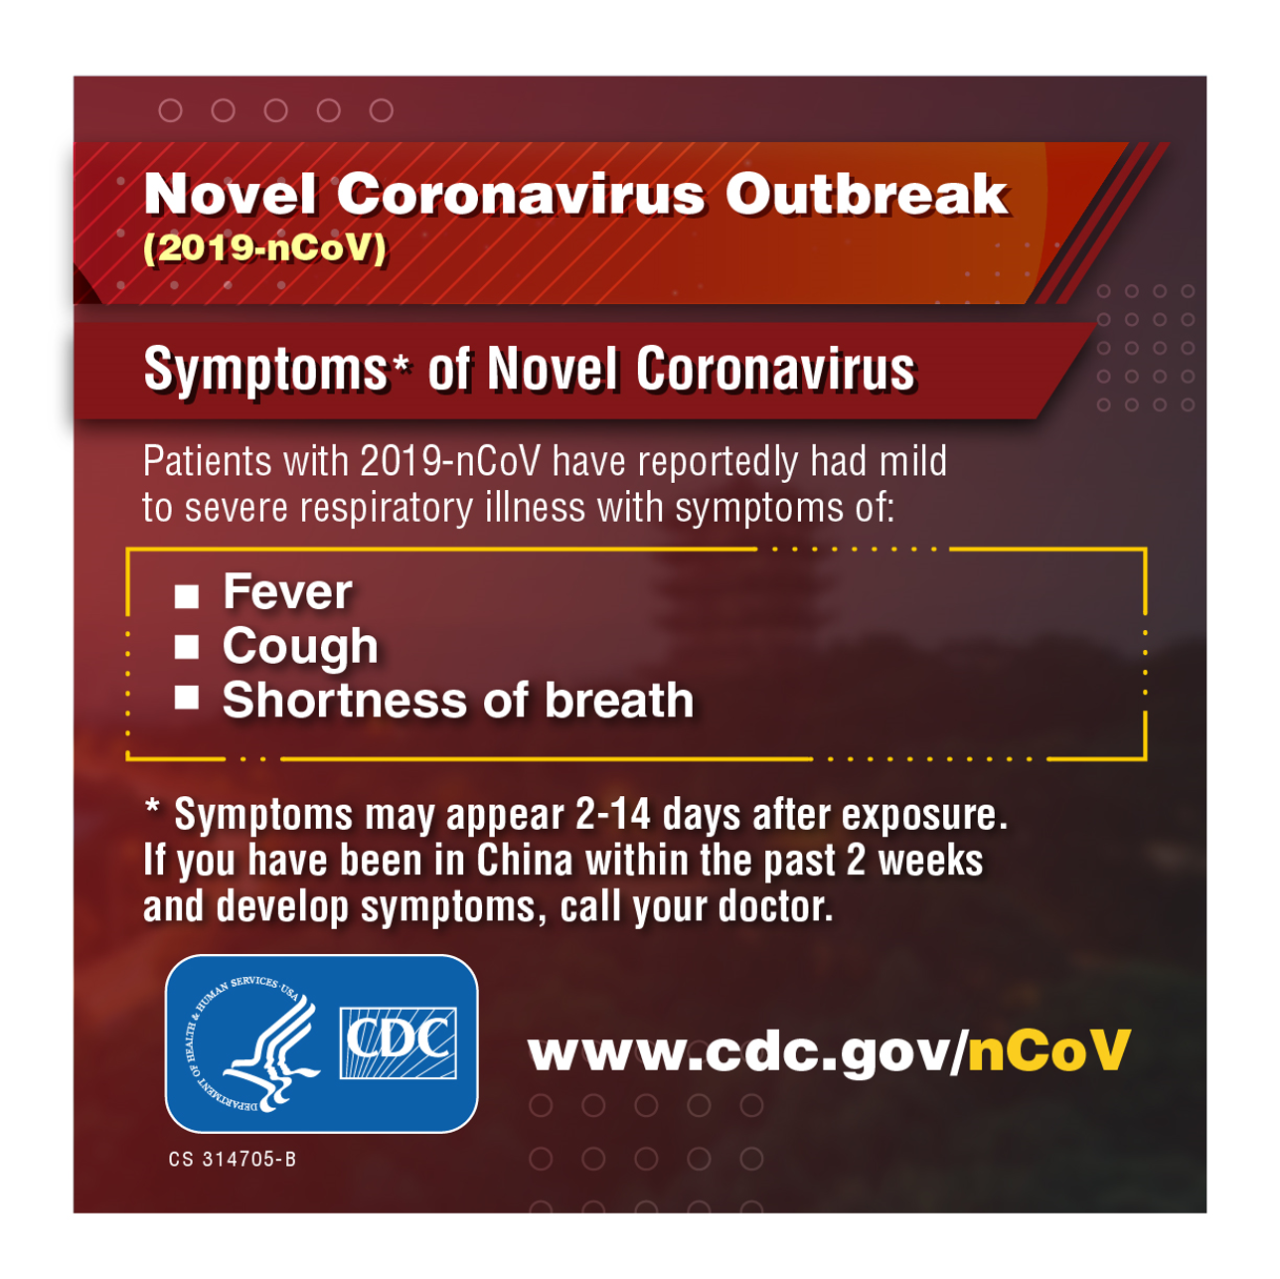 CDC Poster on Wuhan Coronavirus